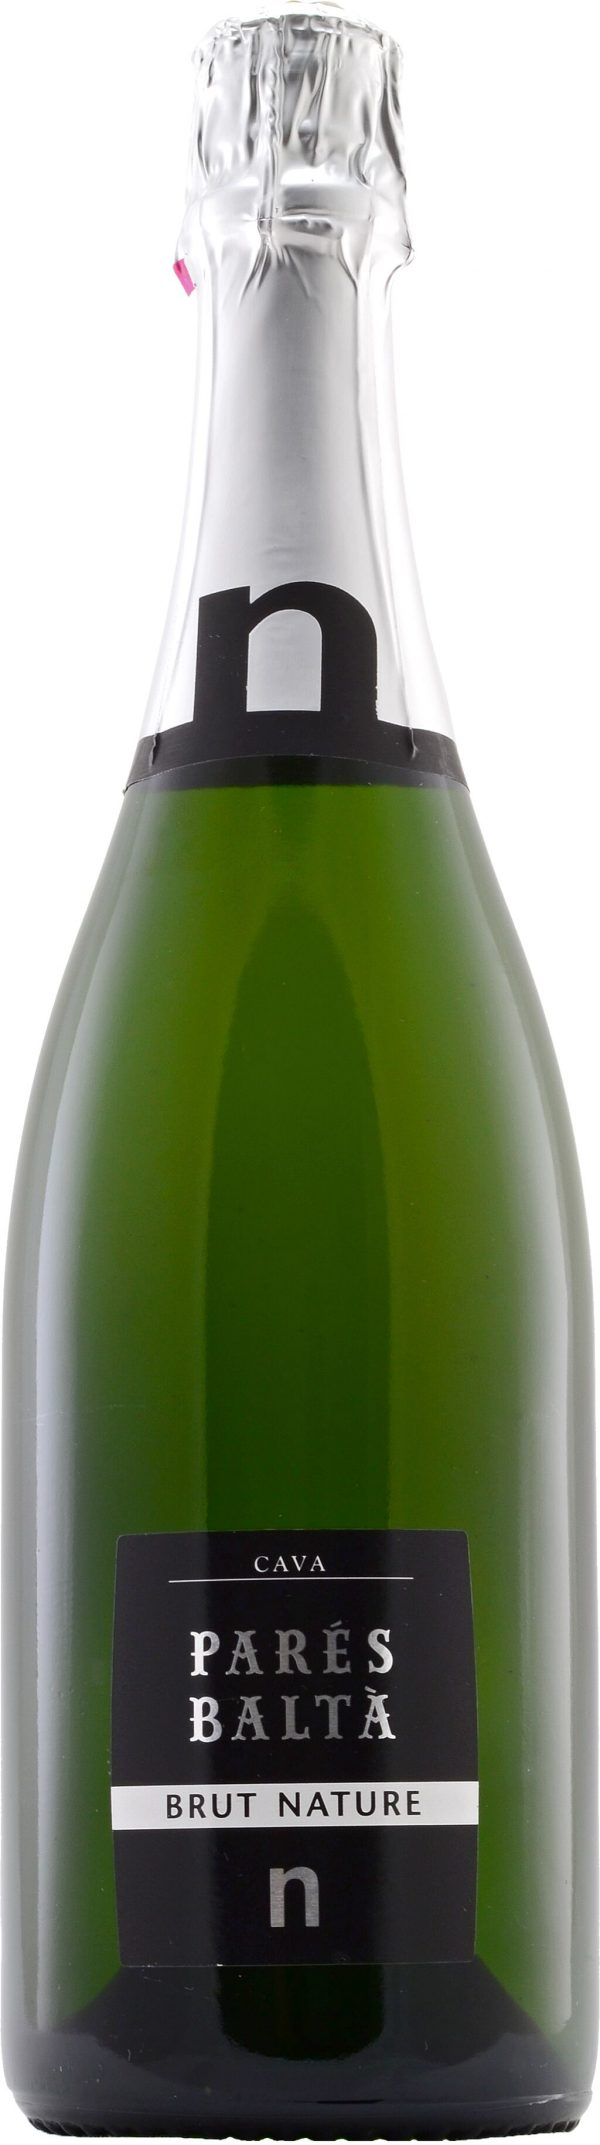 Pares Balta Brut Nature 75cl